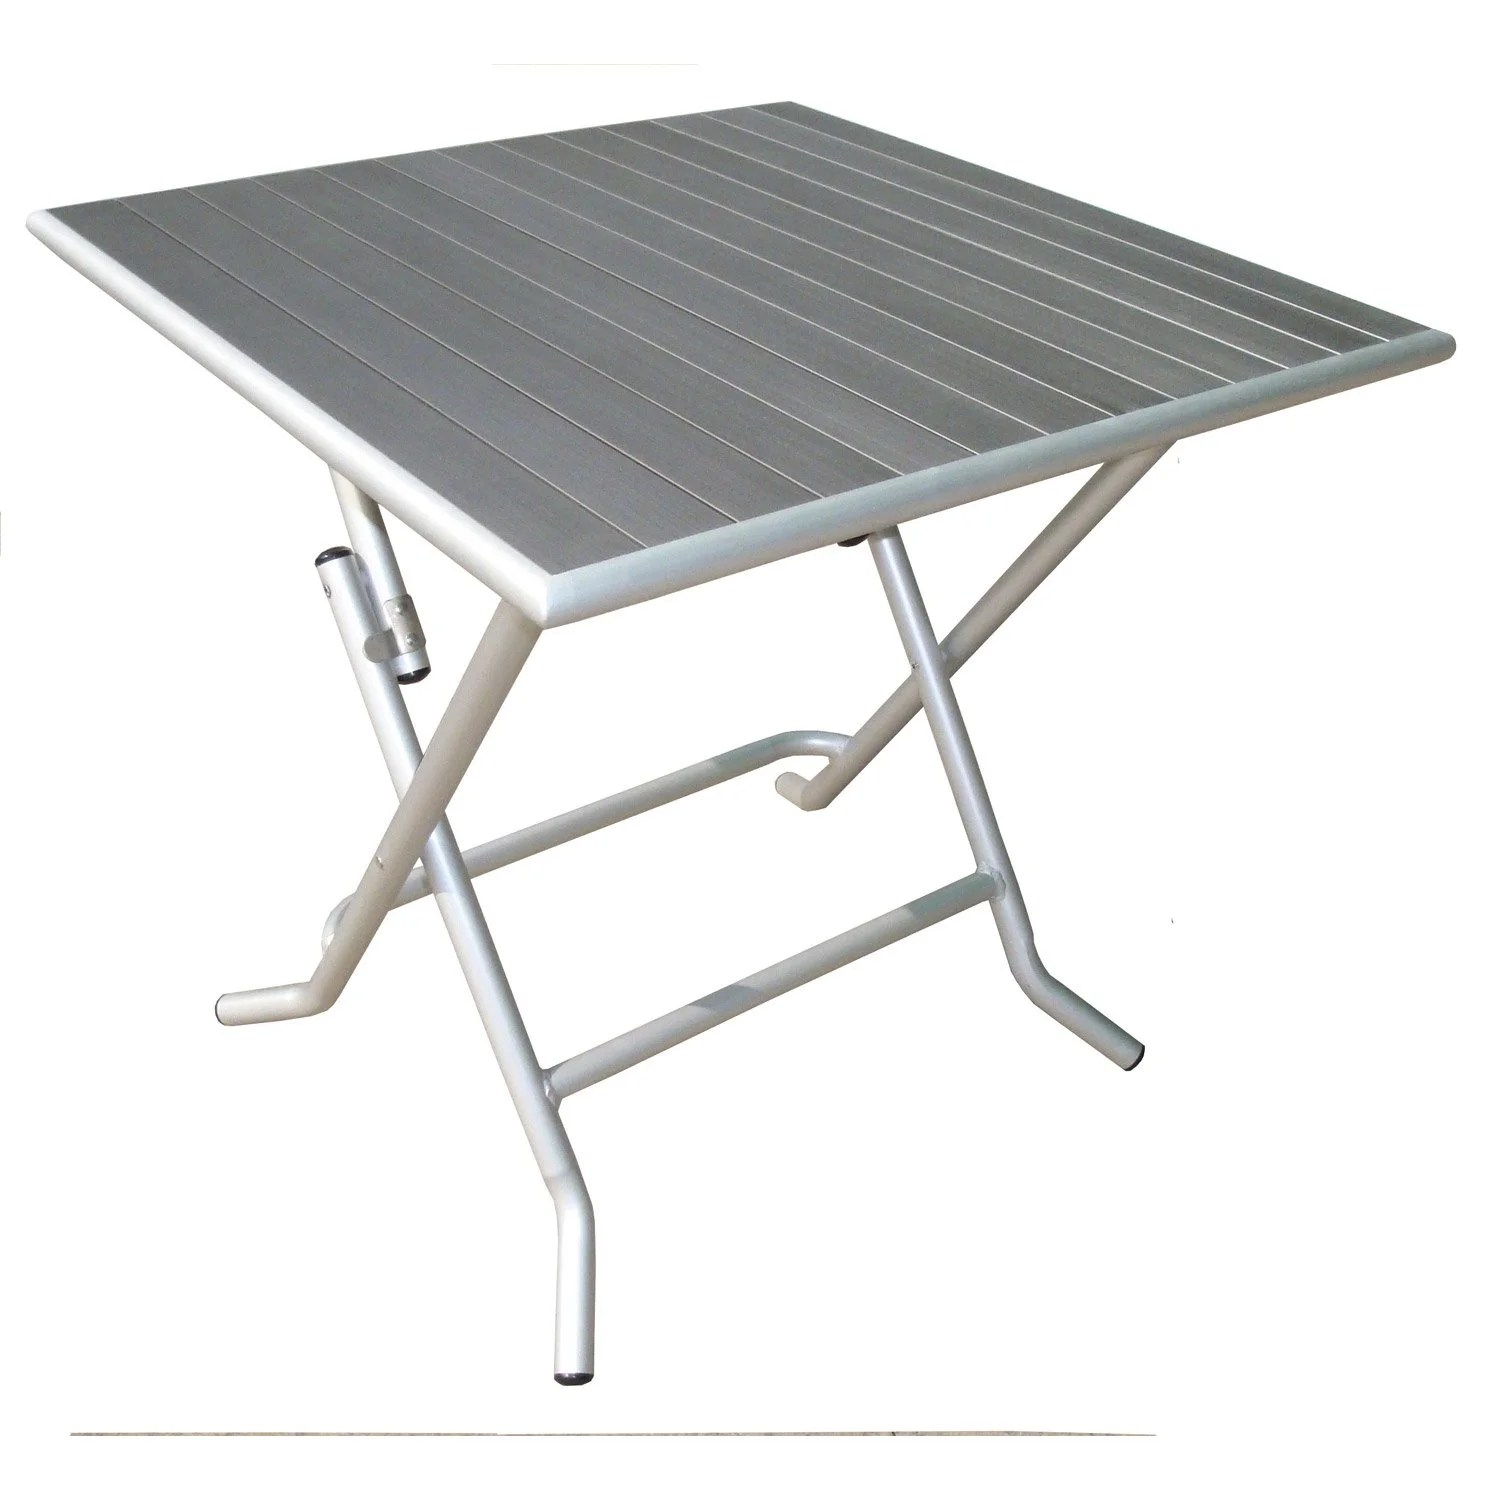 Table Pvc Exterieur Table De Jardin Naterial Boston Carrée Gris 4 Personnes